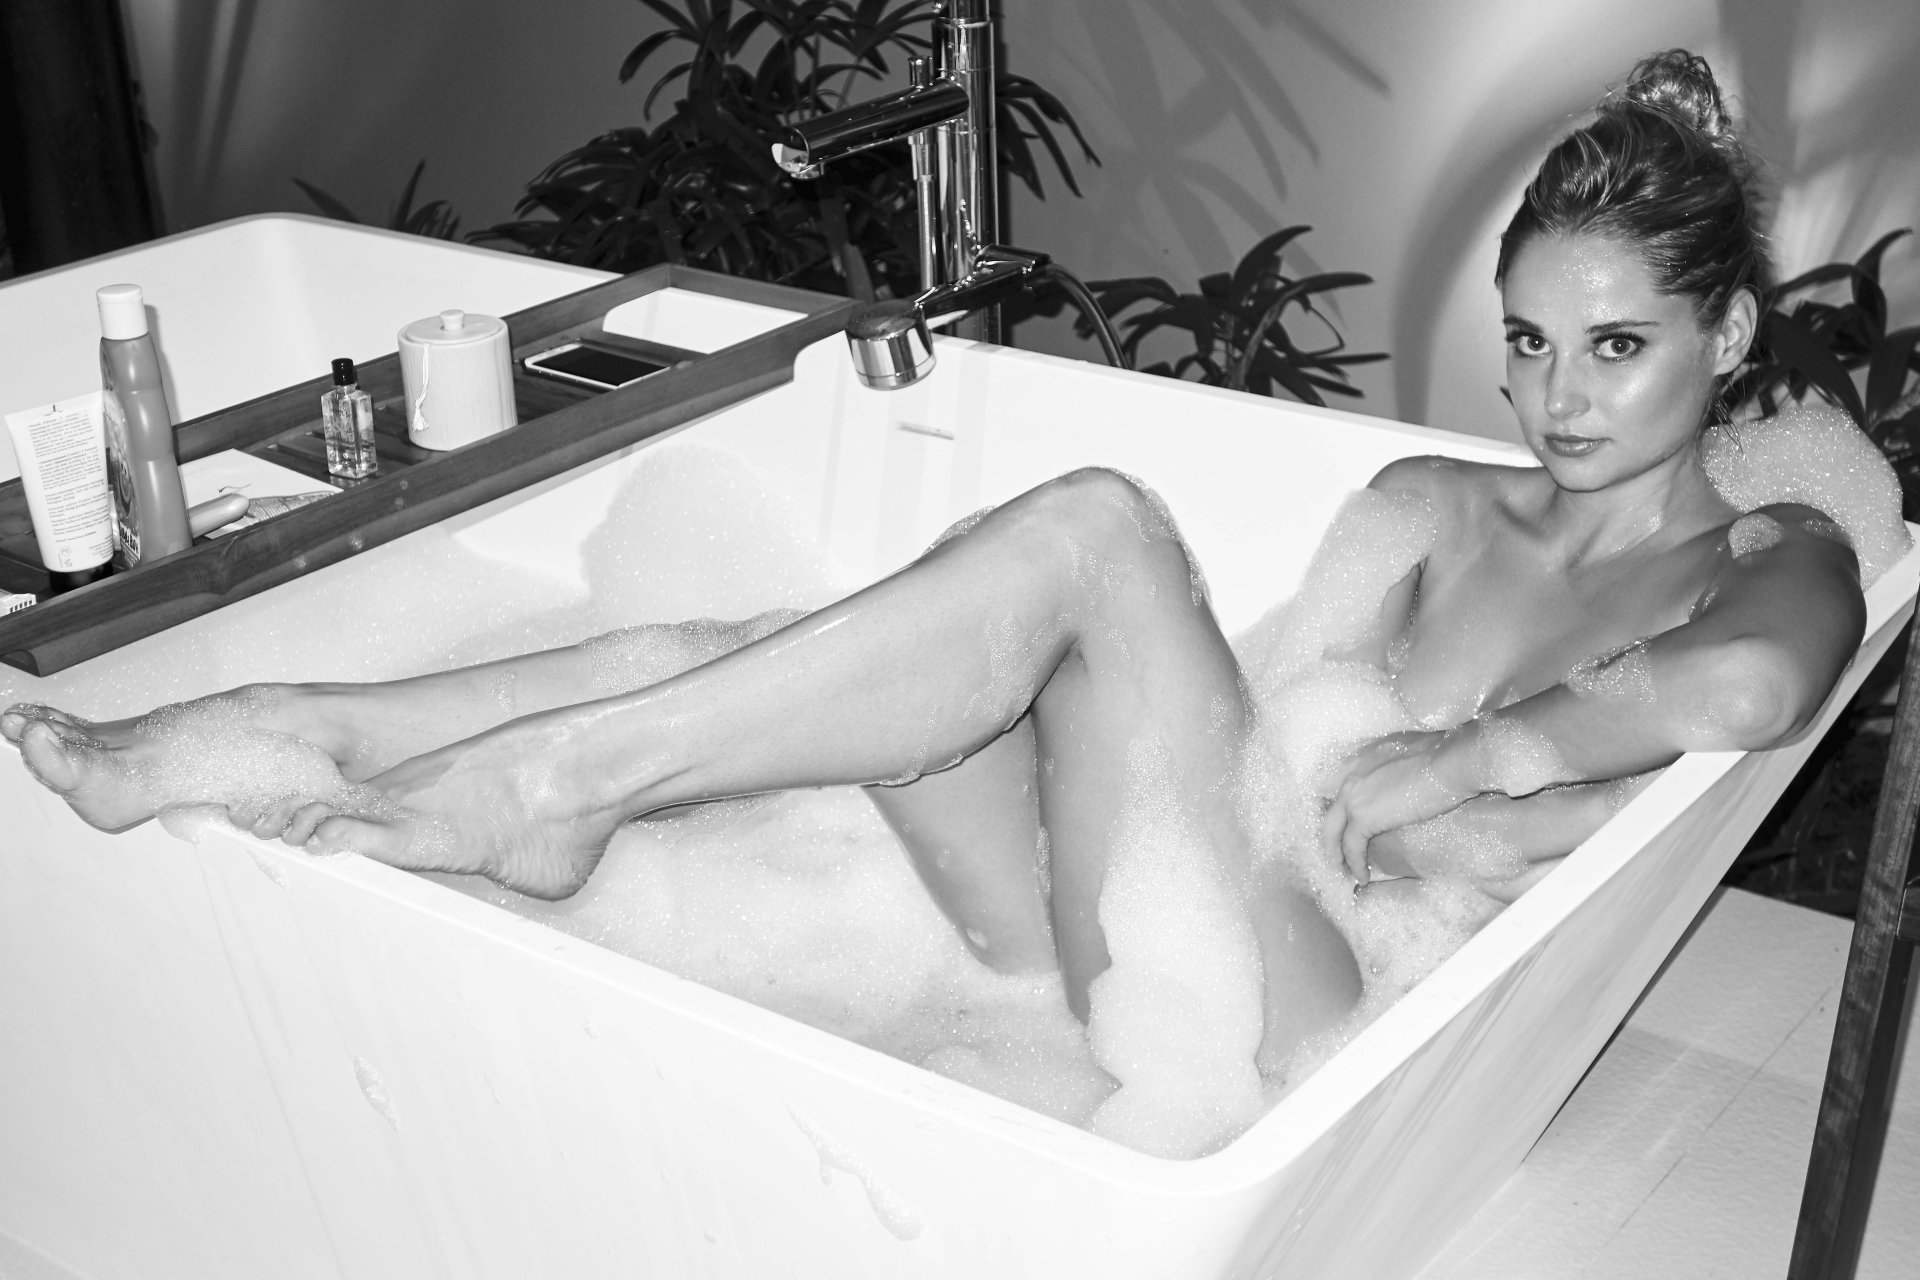 Genevieve morton nude, sexy, the fappening, uncensored